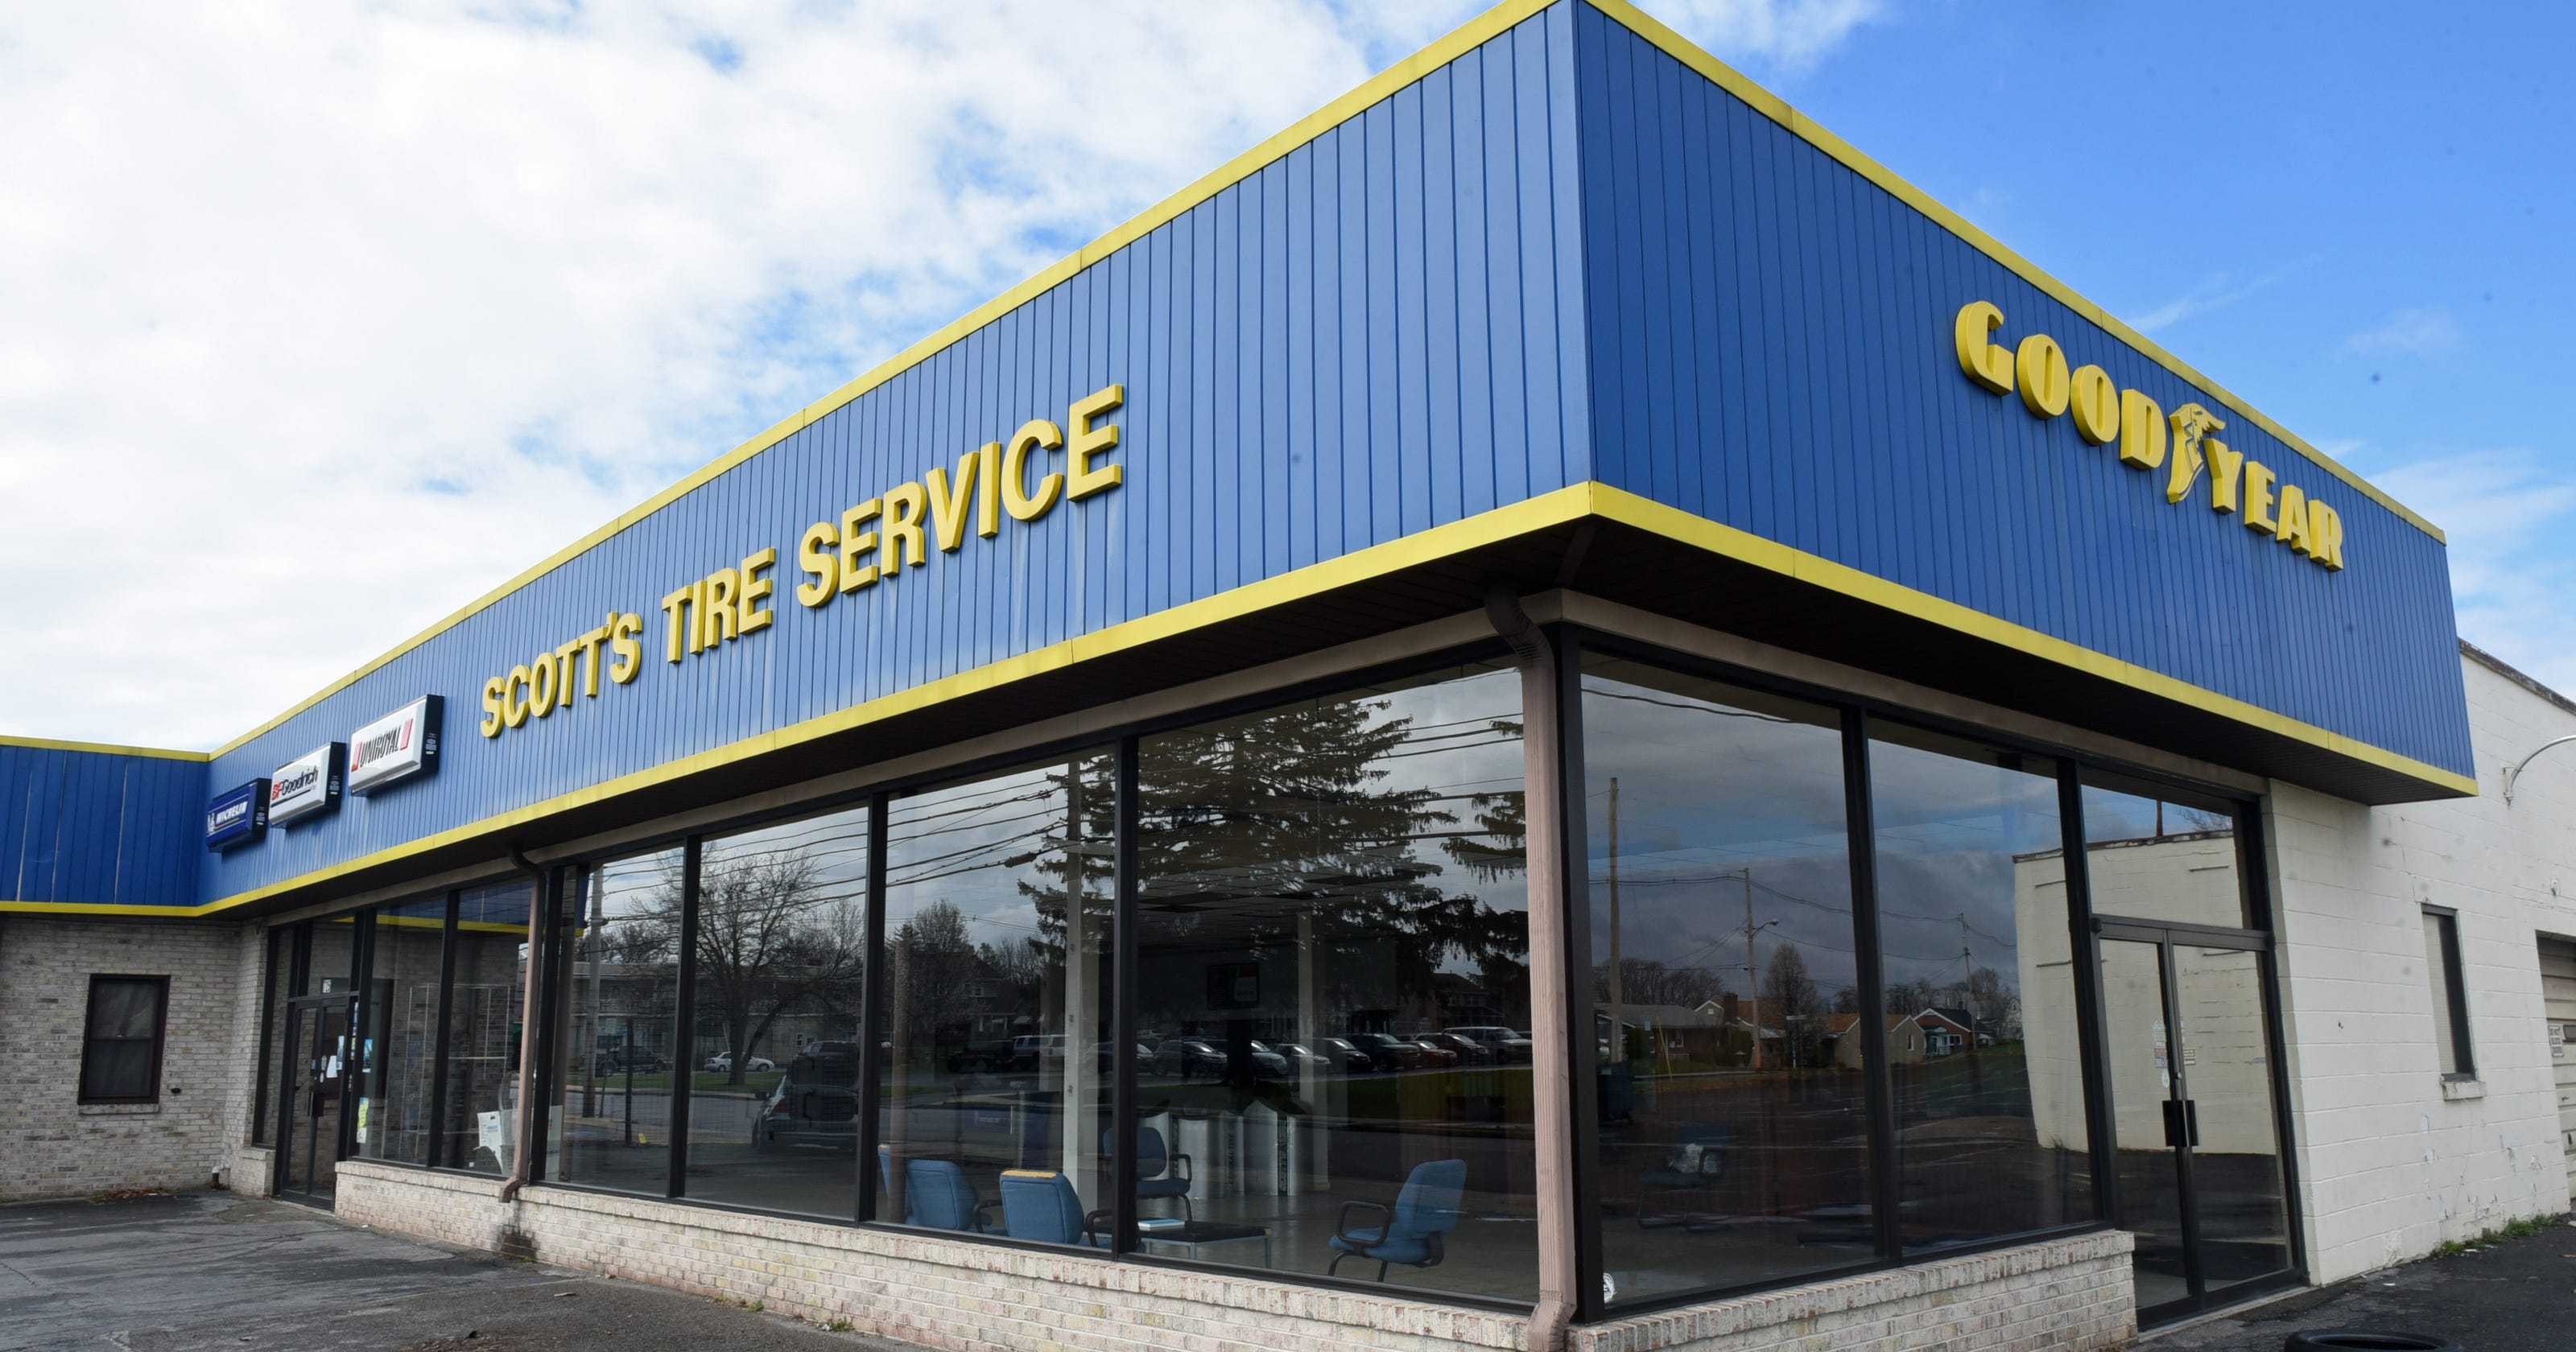 scott 39 s tire service closes after 30 years. Black Bedroom Furniture Sets. Home Design Ideas